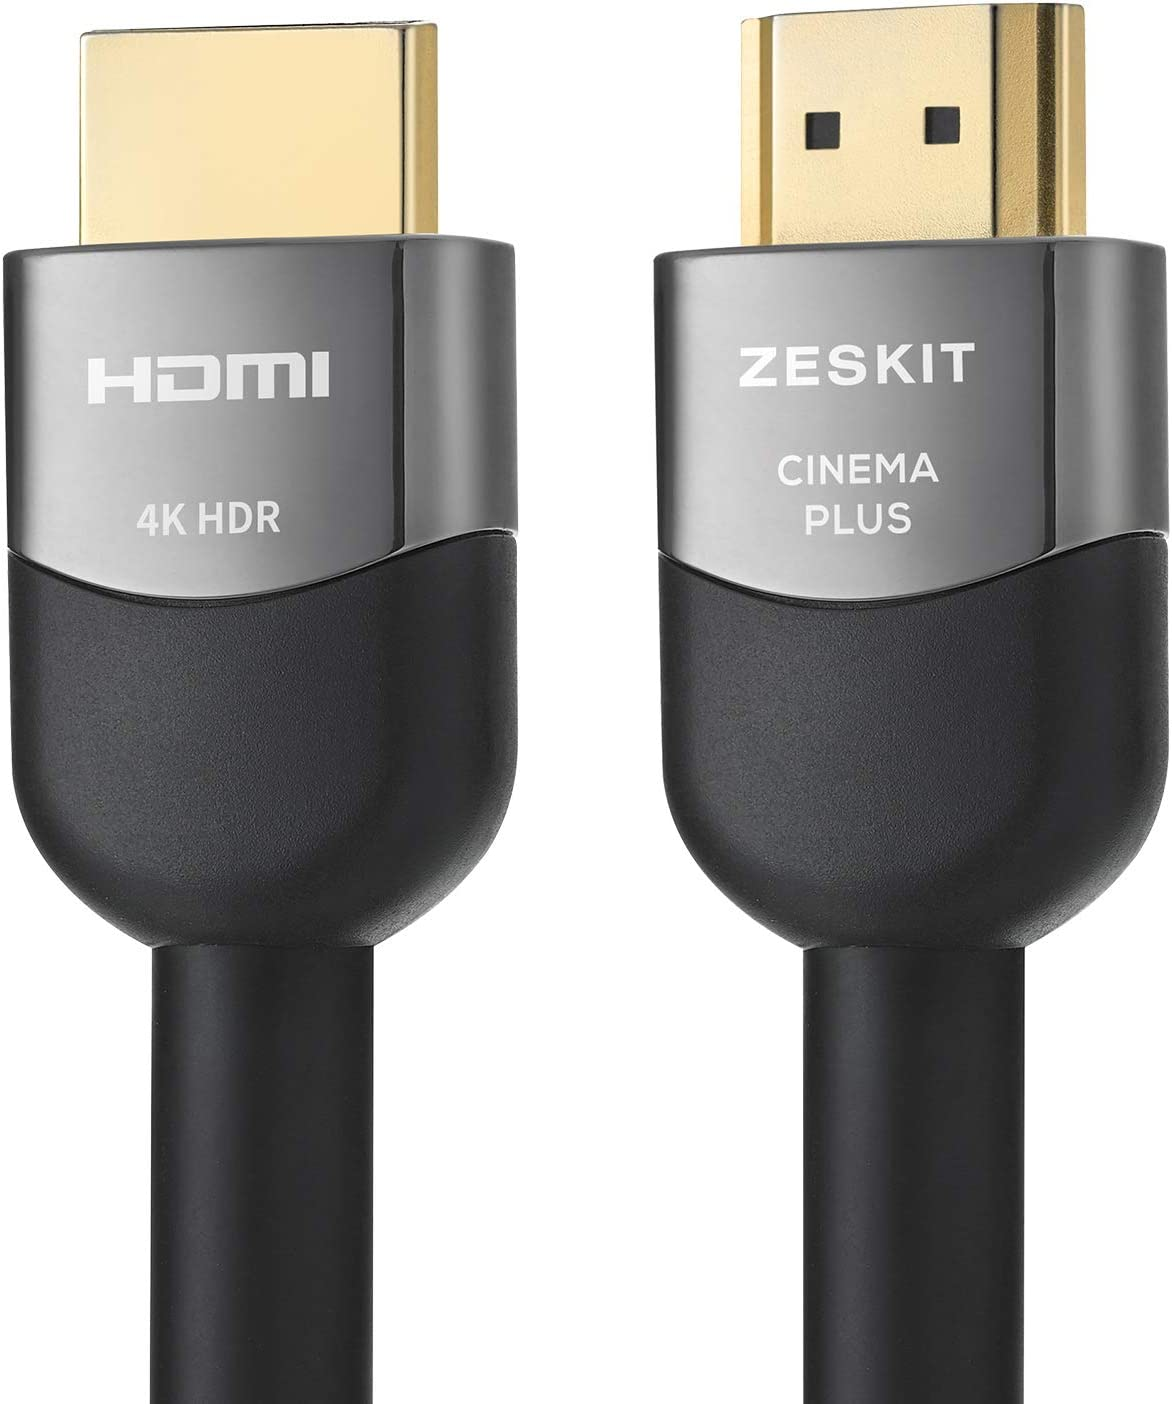 Compatible with Xbox PS4 Pro Apple TV 4K Fire Netflix Samsung LG Sony 4K 60Hz HDR Dolby Vision HDCP 2.2 CL3 in-Wall HDMI 2.0 High Speed 18Gbps Zeskit 16 Feet HDMI Cable